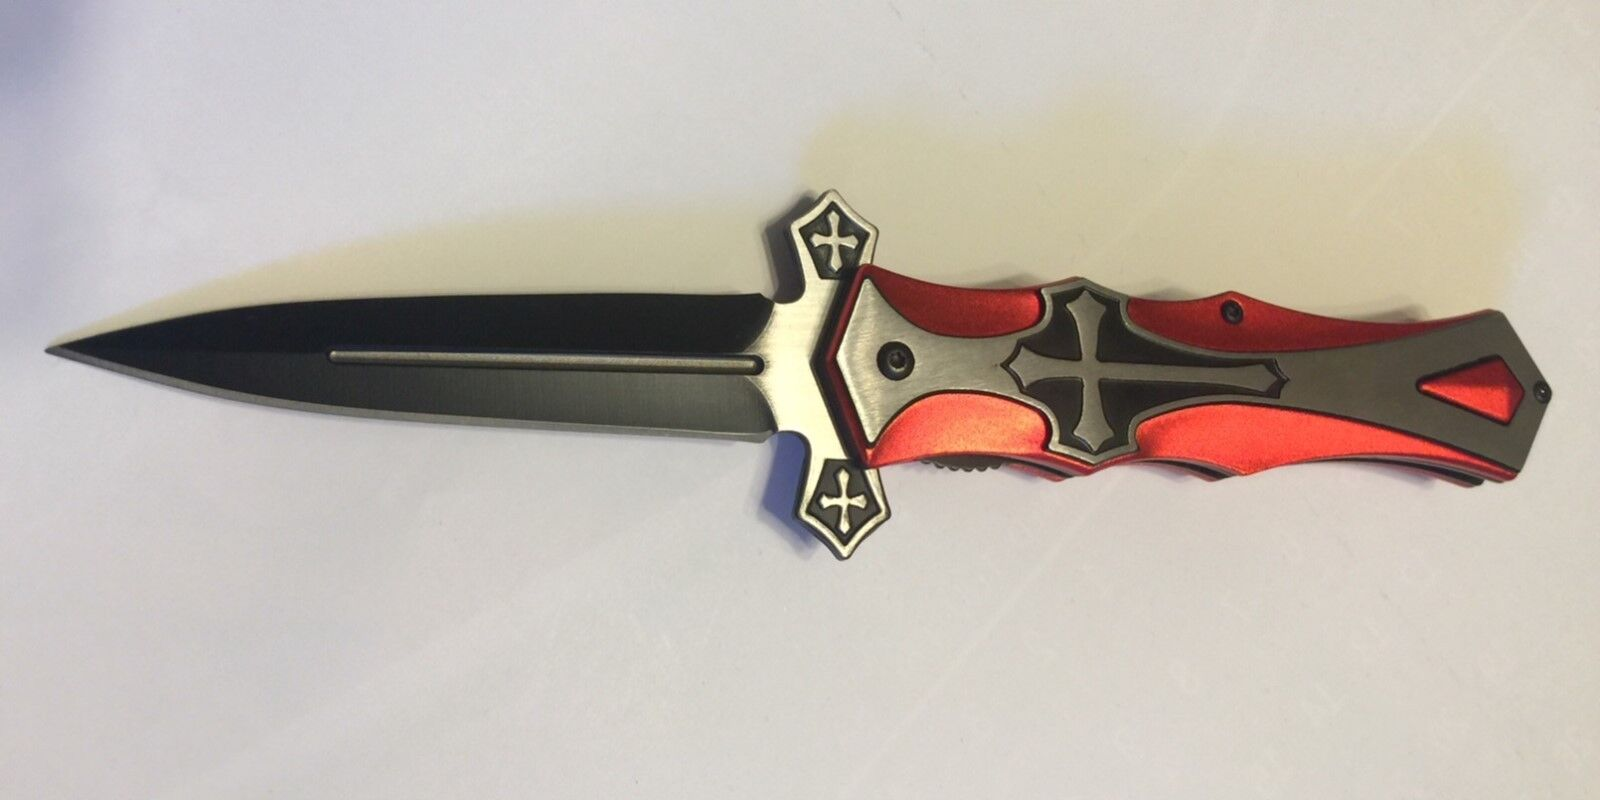 TAC-FORCE Spring Assisted Open Red CROSS Folding Blade STILE